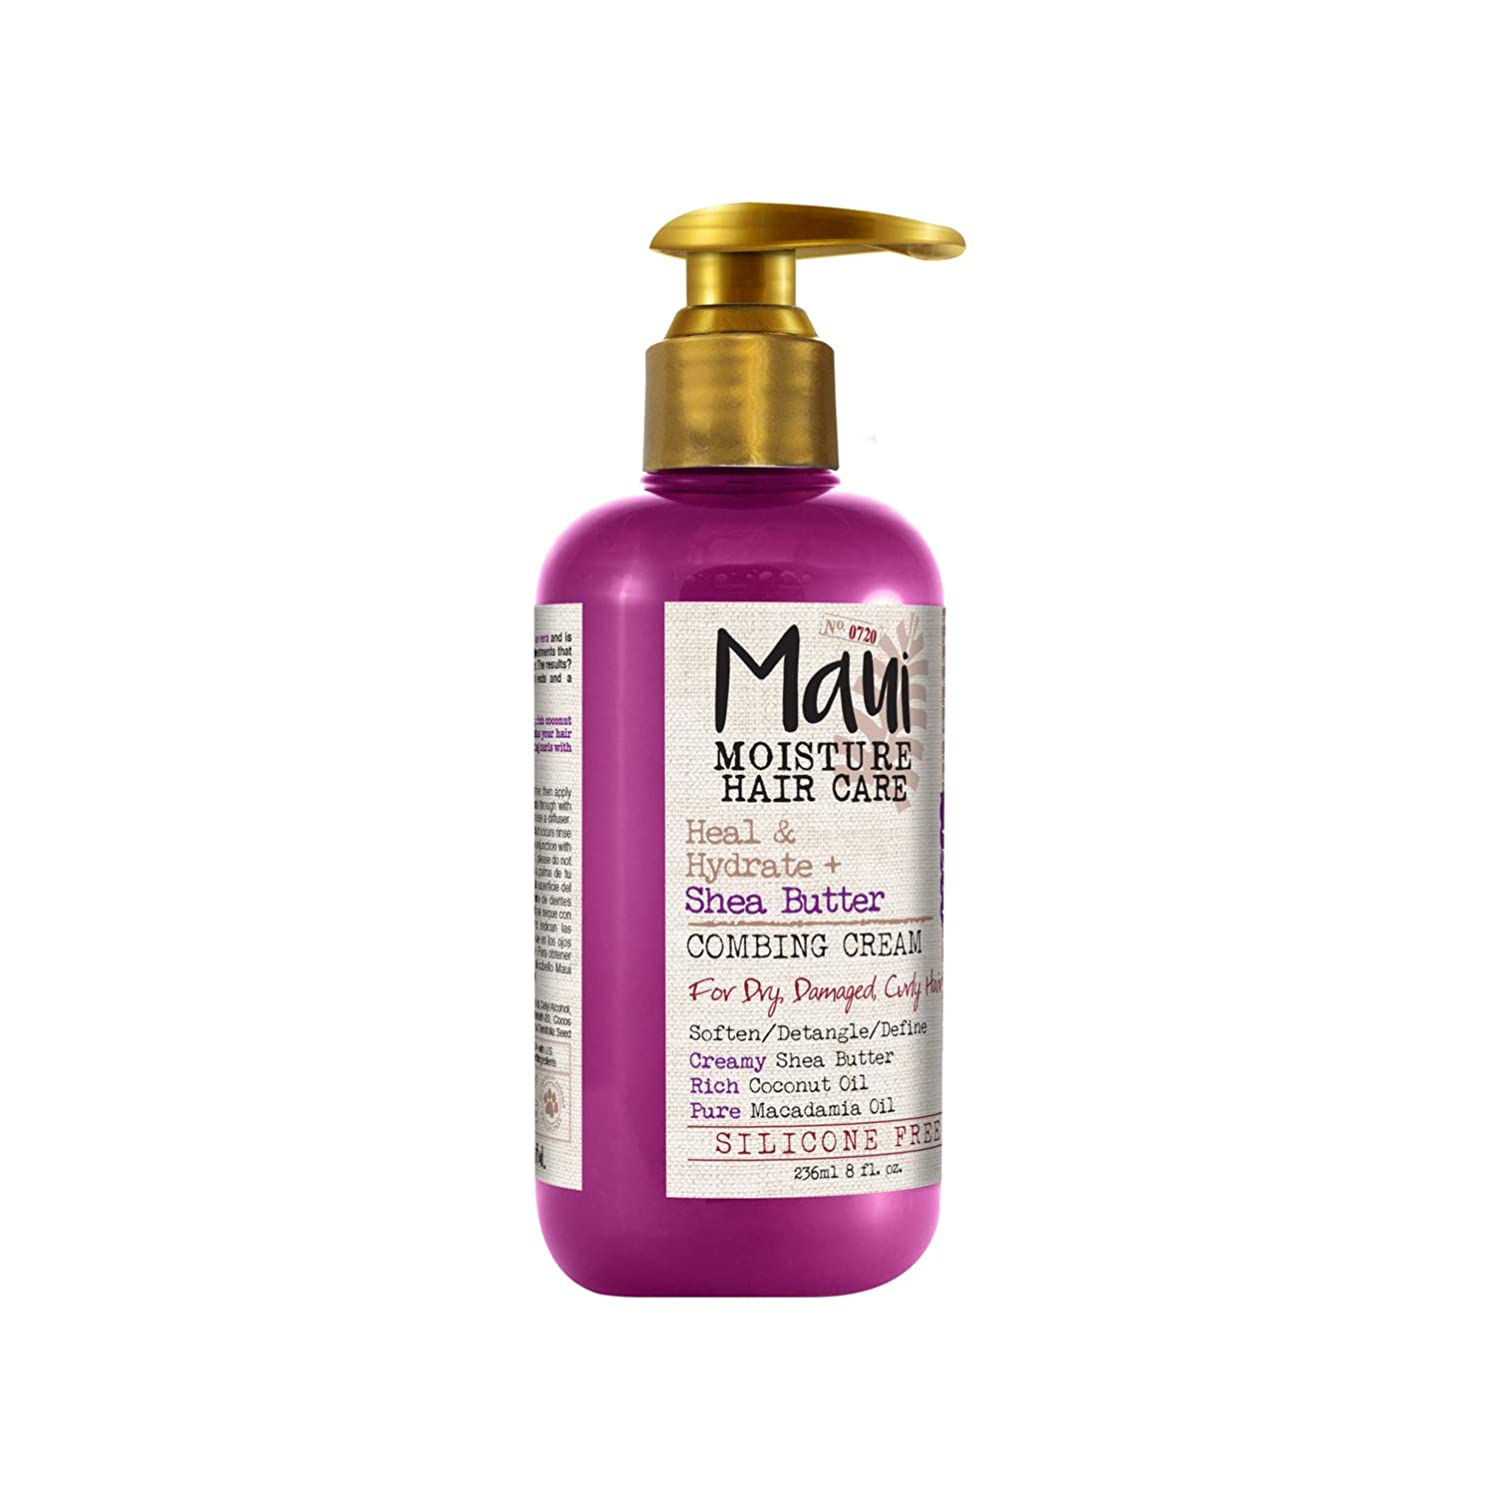 Maui Moisture Heal & Hydrate + Shea Butter Vegan Combing Cream for Thick Curly Hair, Silicone- & Sulfate-Free Leave-In Hair Treatment with Coconut & Macadamia Oils to Define Curls, 8 oz: Beauty